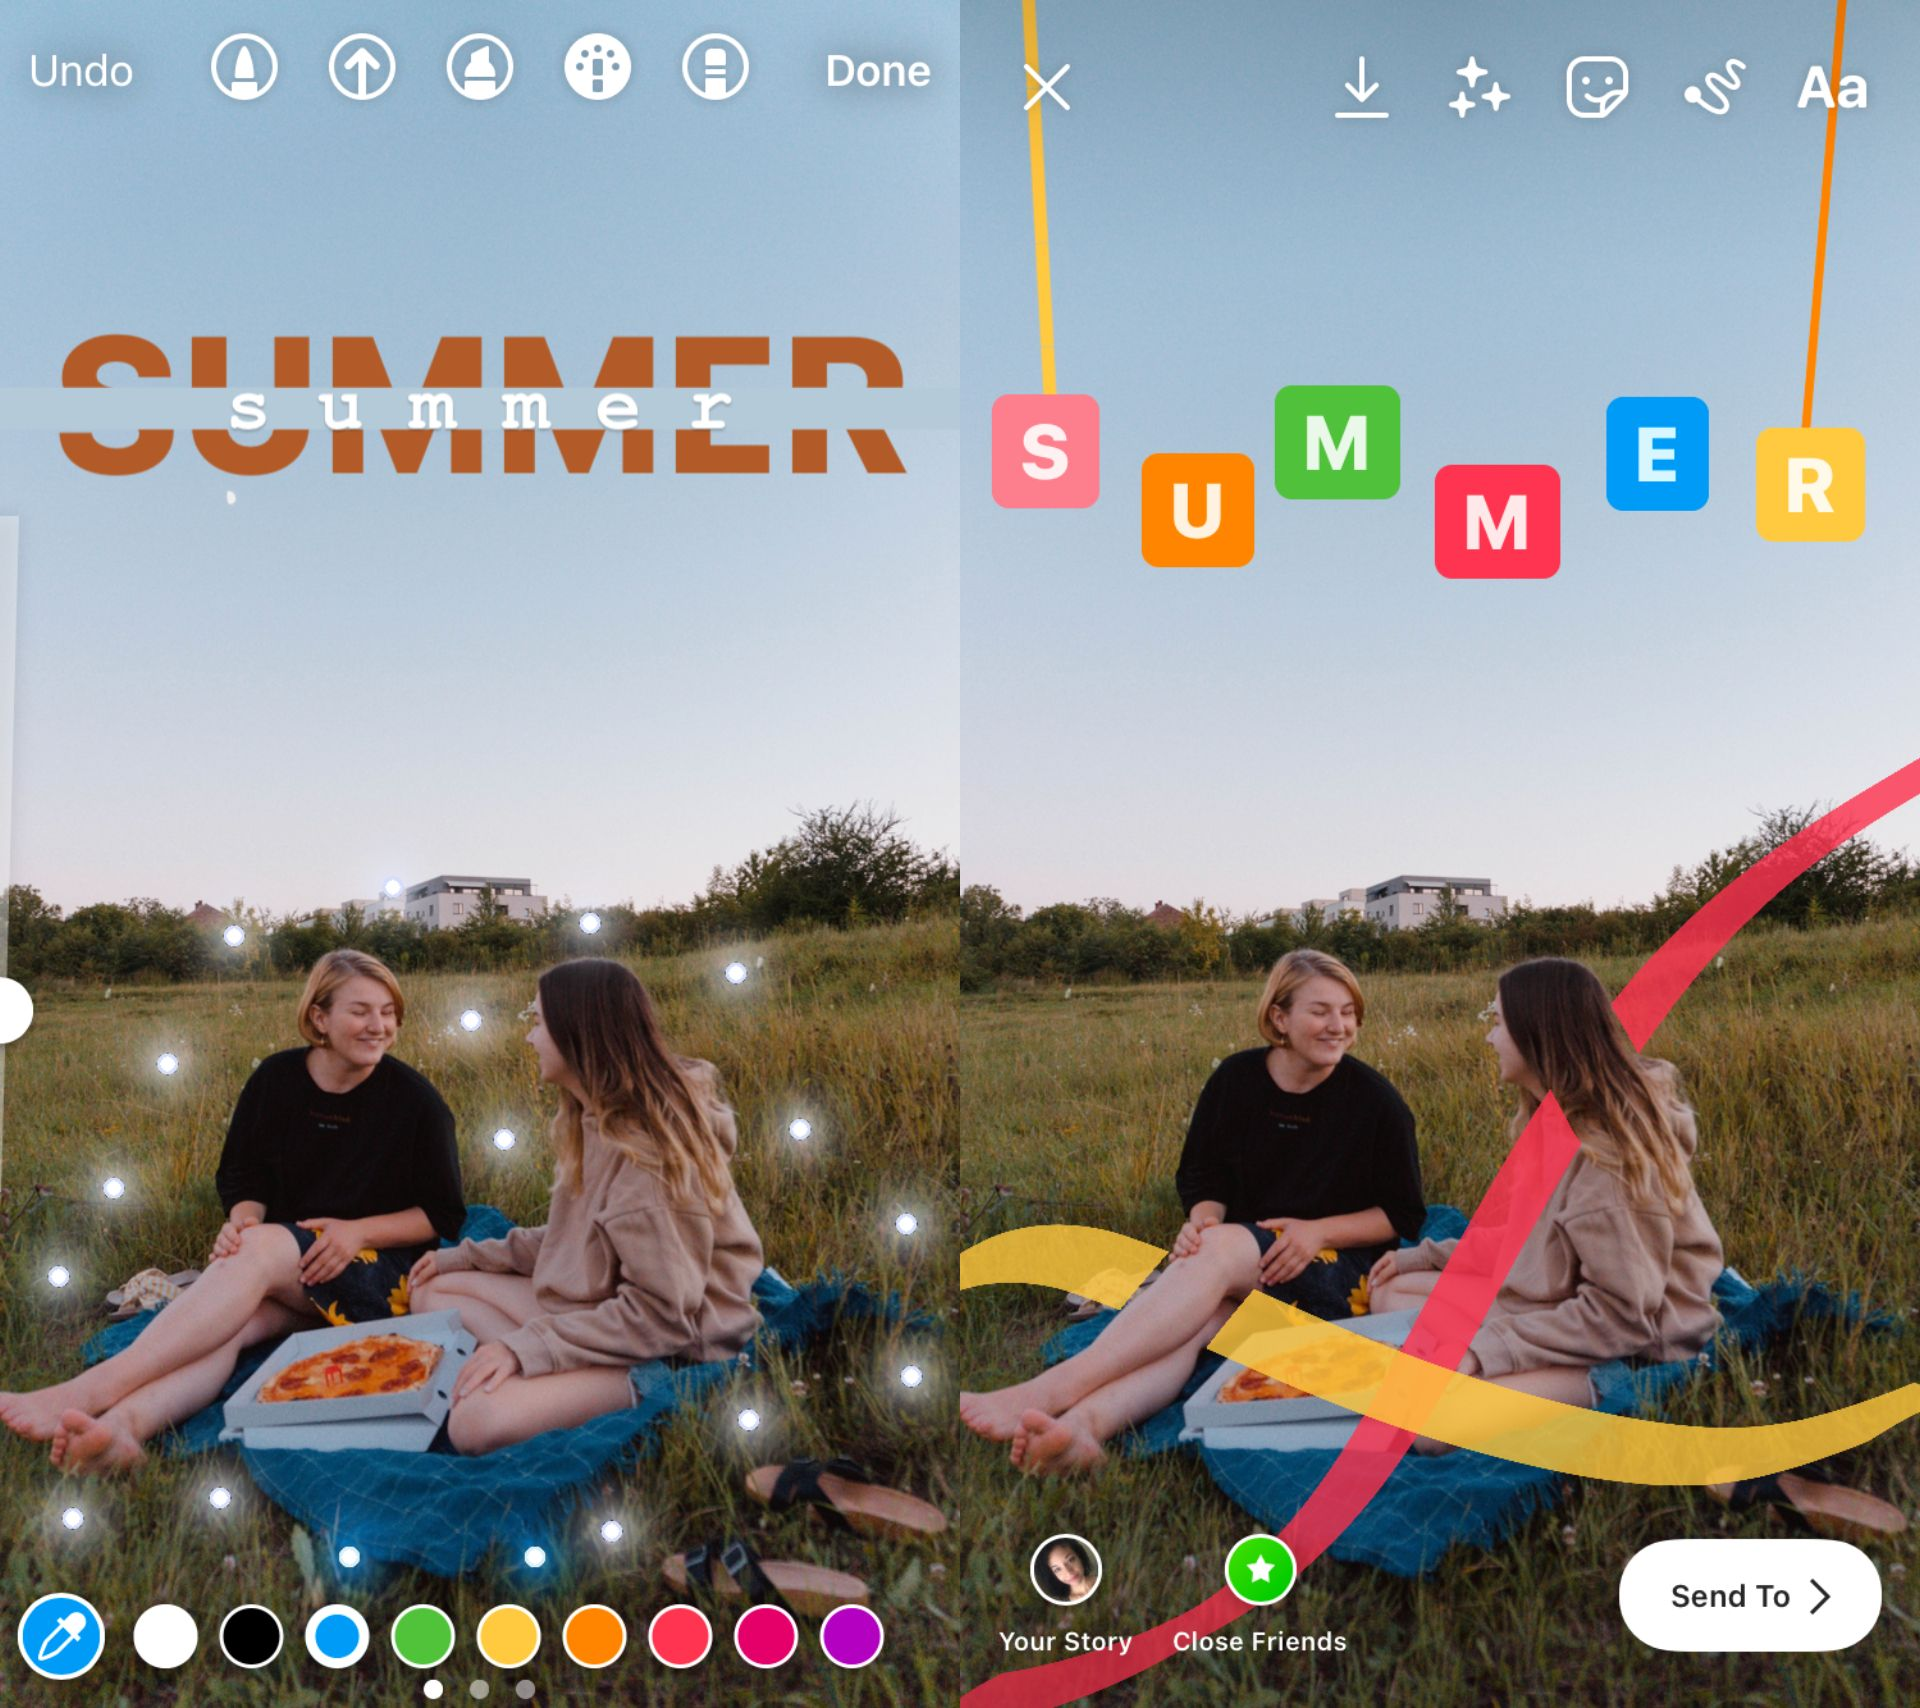 two screenshots showing how to use the brush tool on Instagram Story